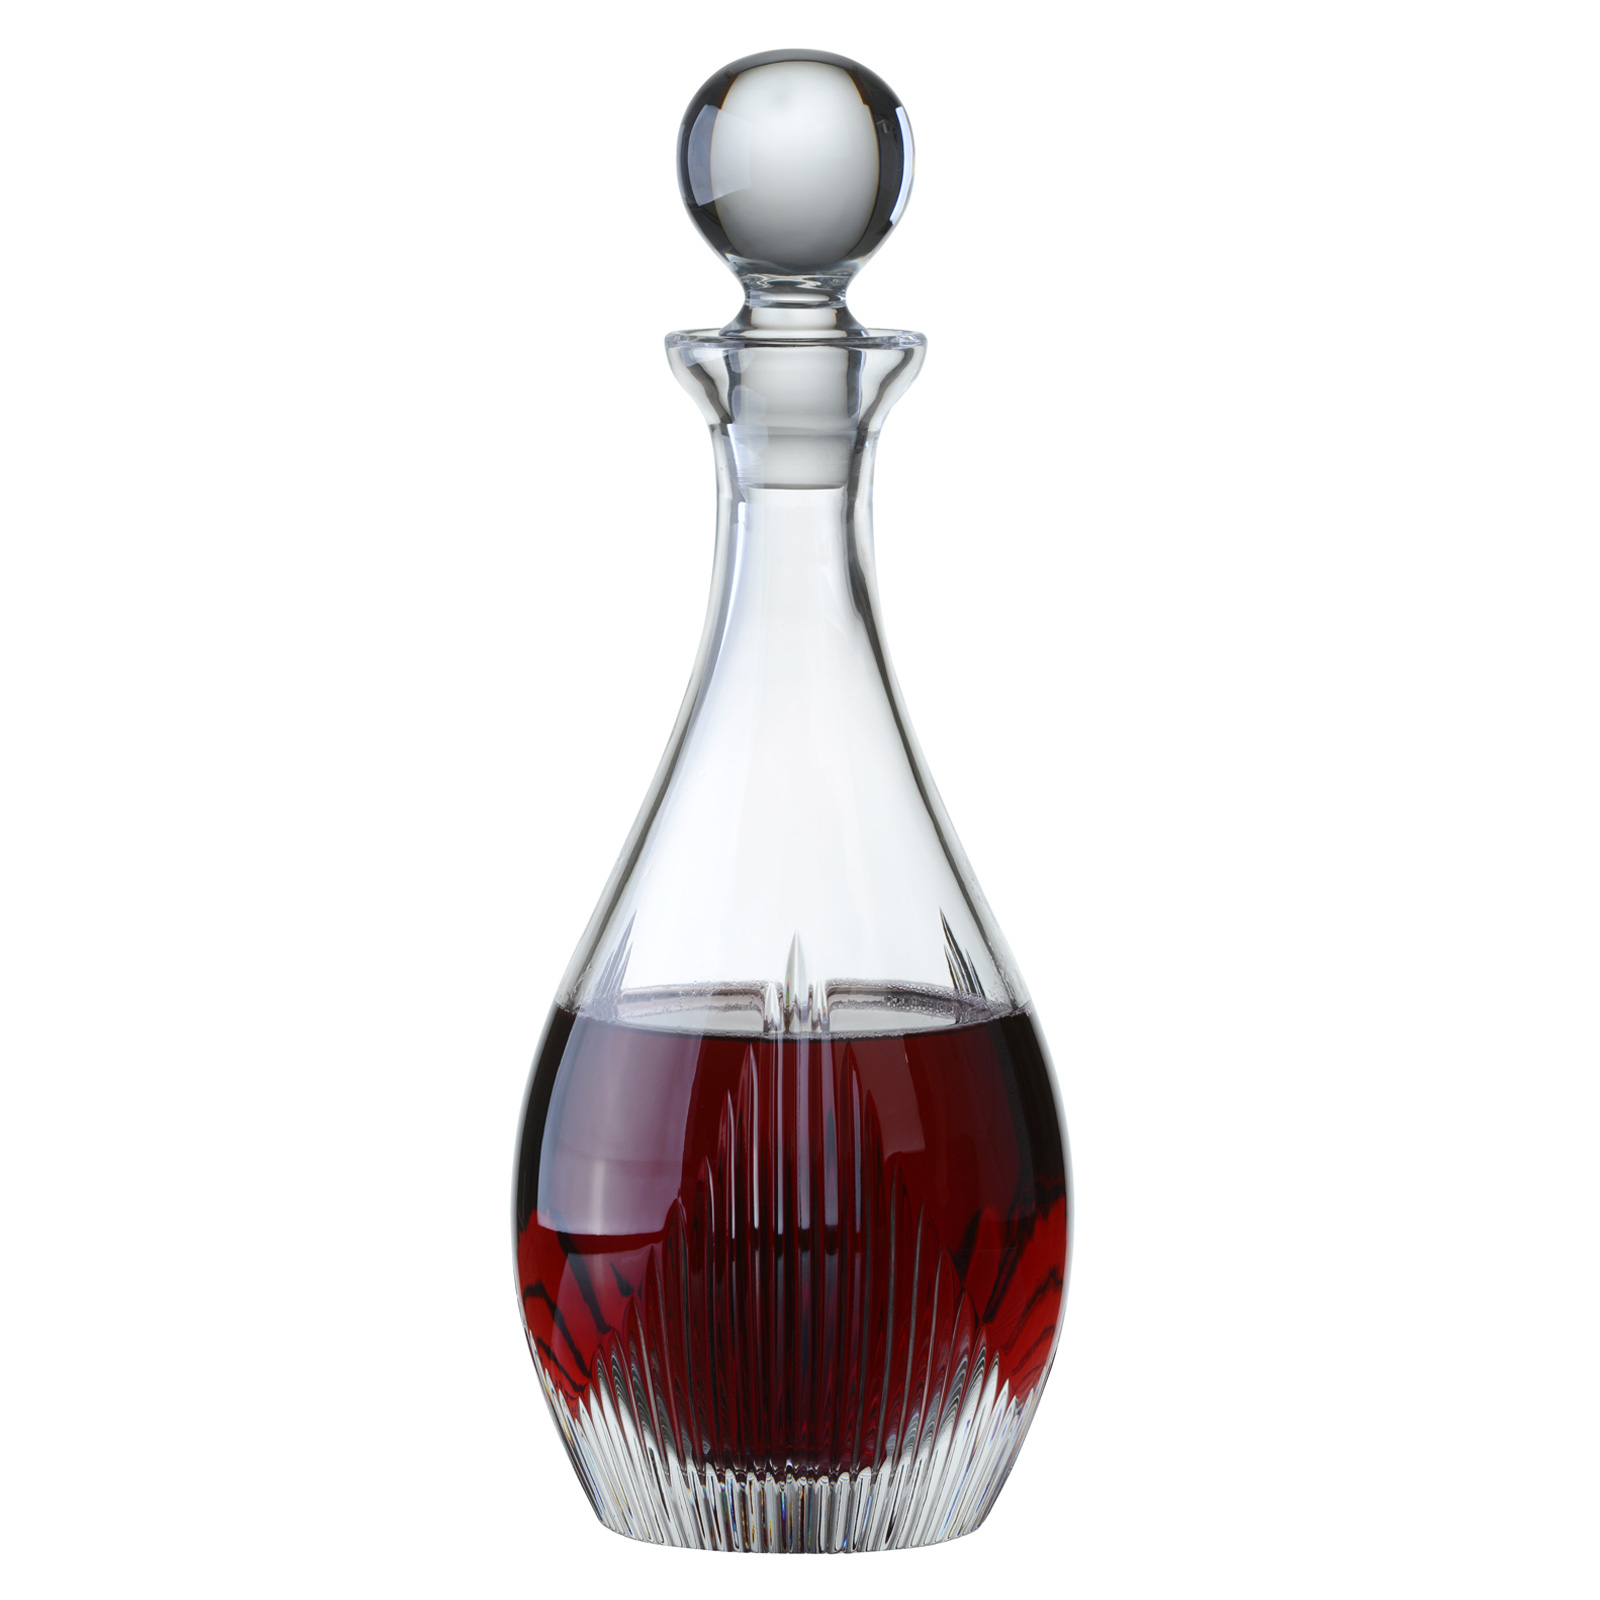 Shard Wine Decanter by Anton Studio Designs